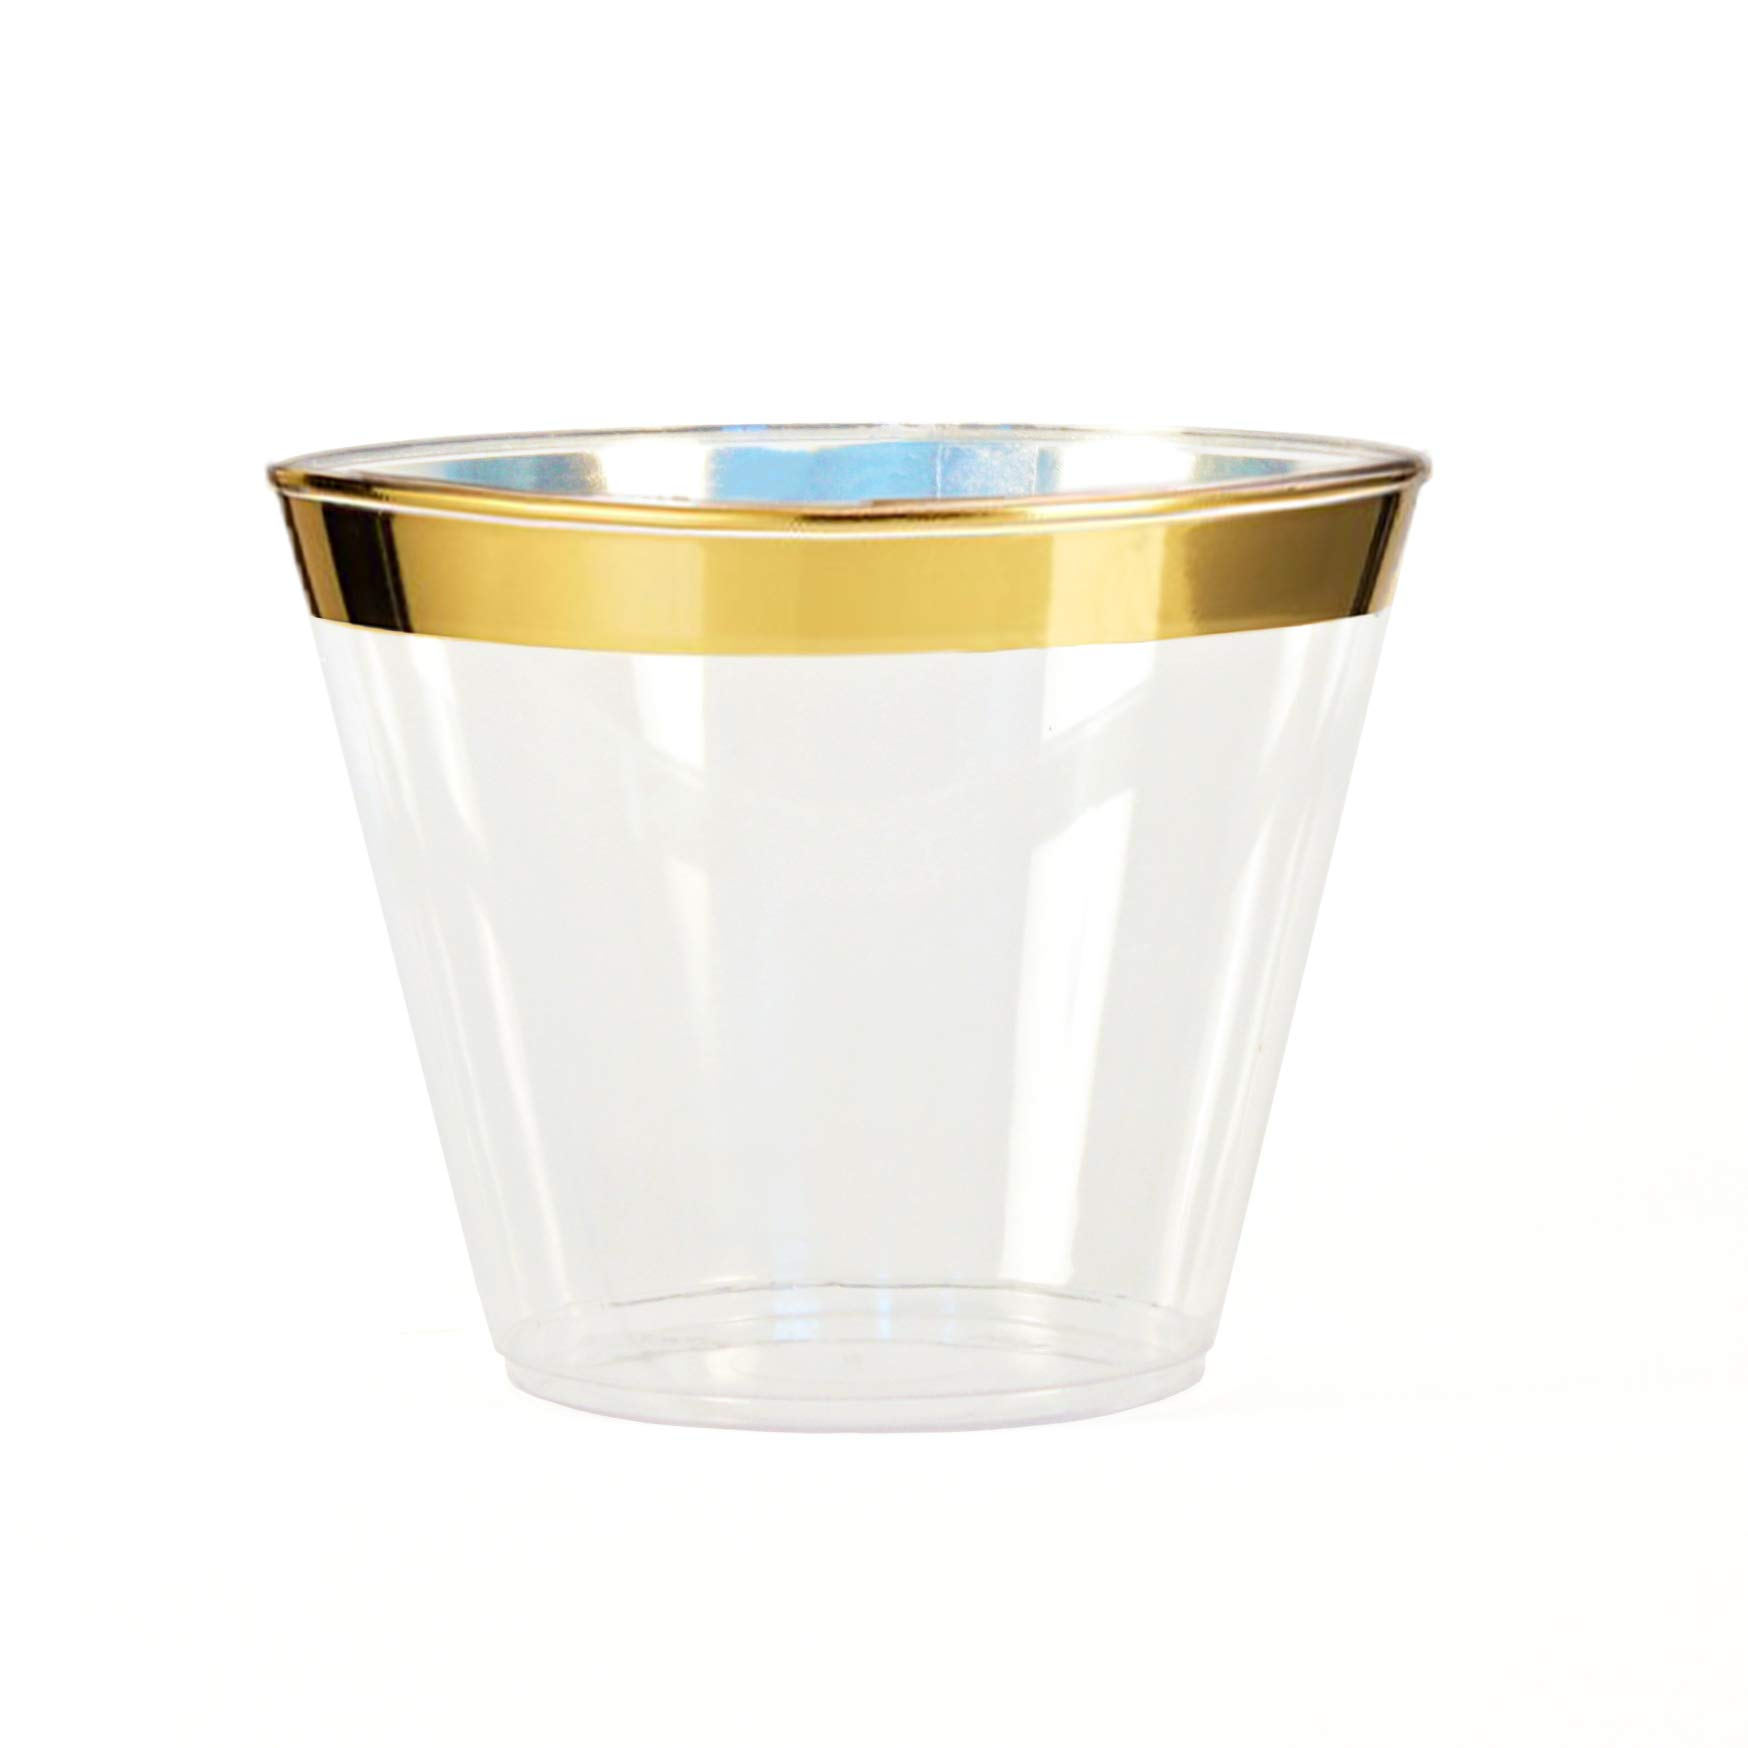 Gold Rimmed Plastic Cups - 50 Count- 9 Ounce Clear Plastic Party Cups - Elegant Gold Style - Wedding, Birthday, Anniversary Drink-Ware with Gold Rim - by Two Dee